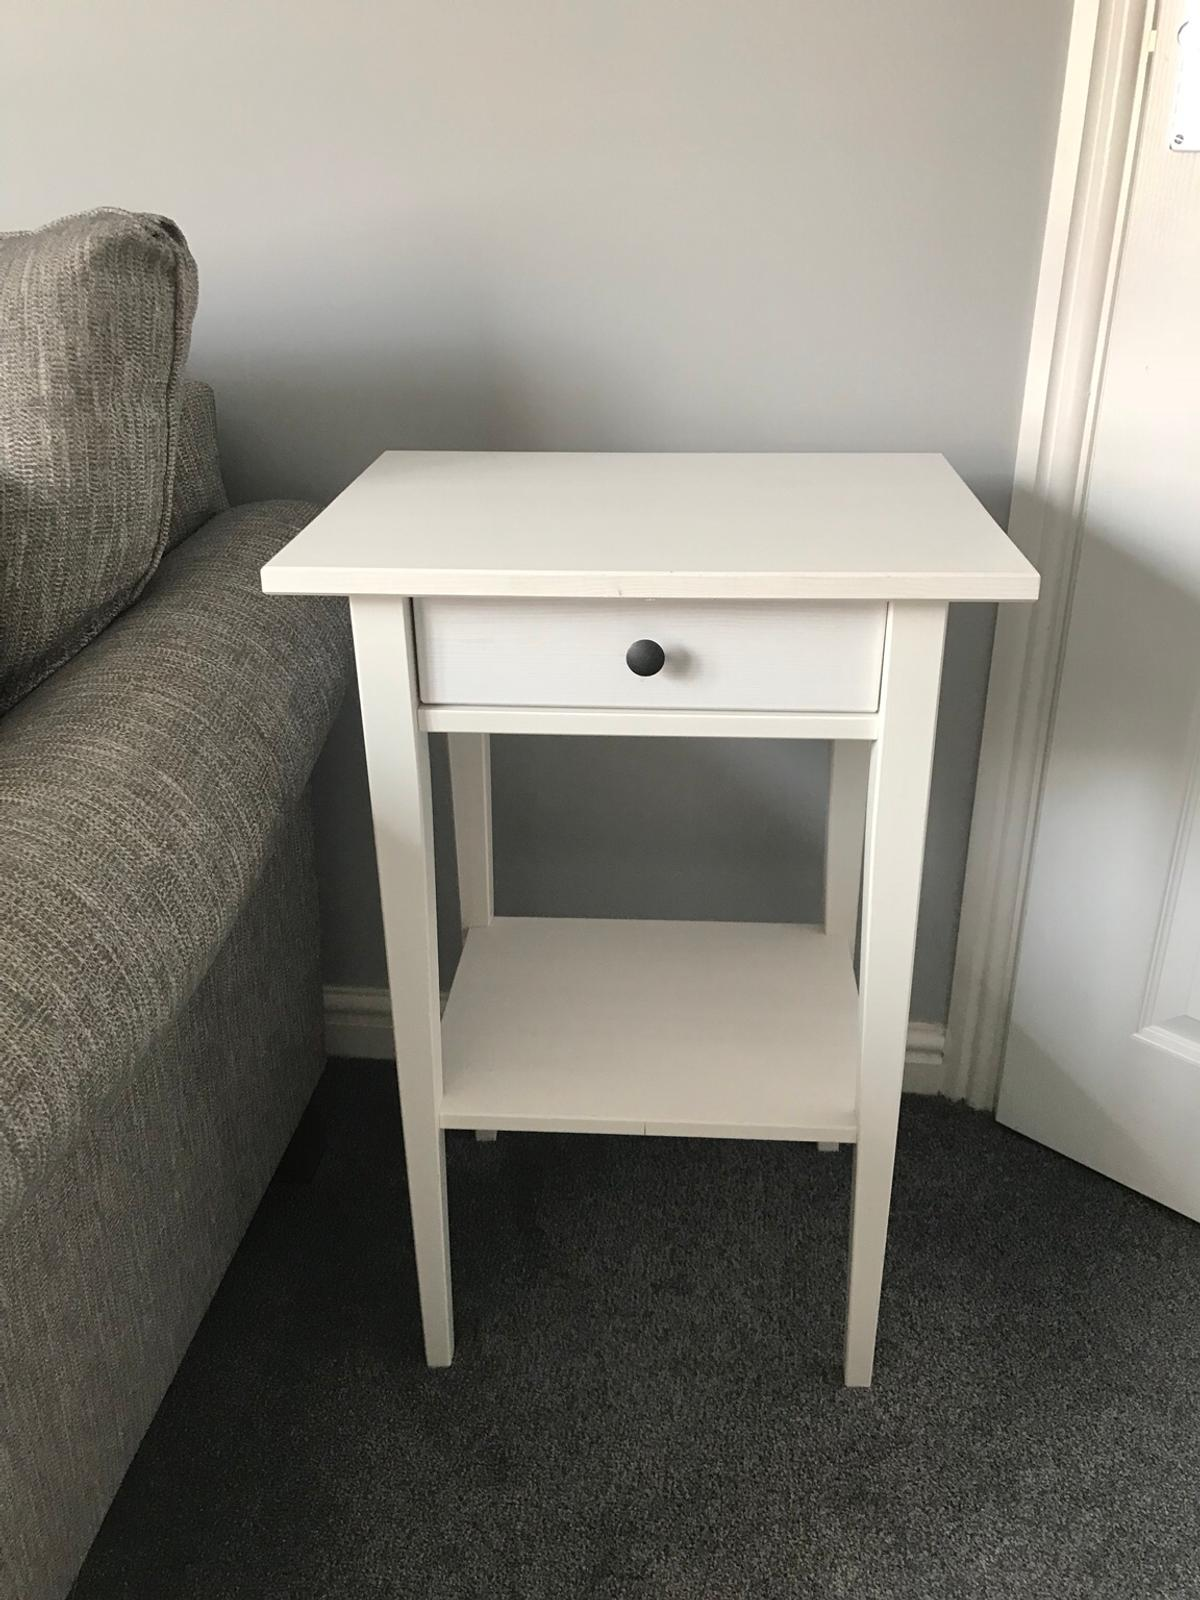 Ikea Hemnes White Bedside Table In Wolverhampton For 25 00 For Sale Shpock